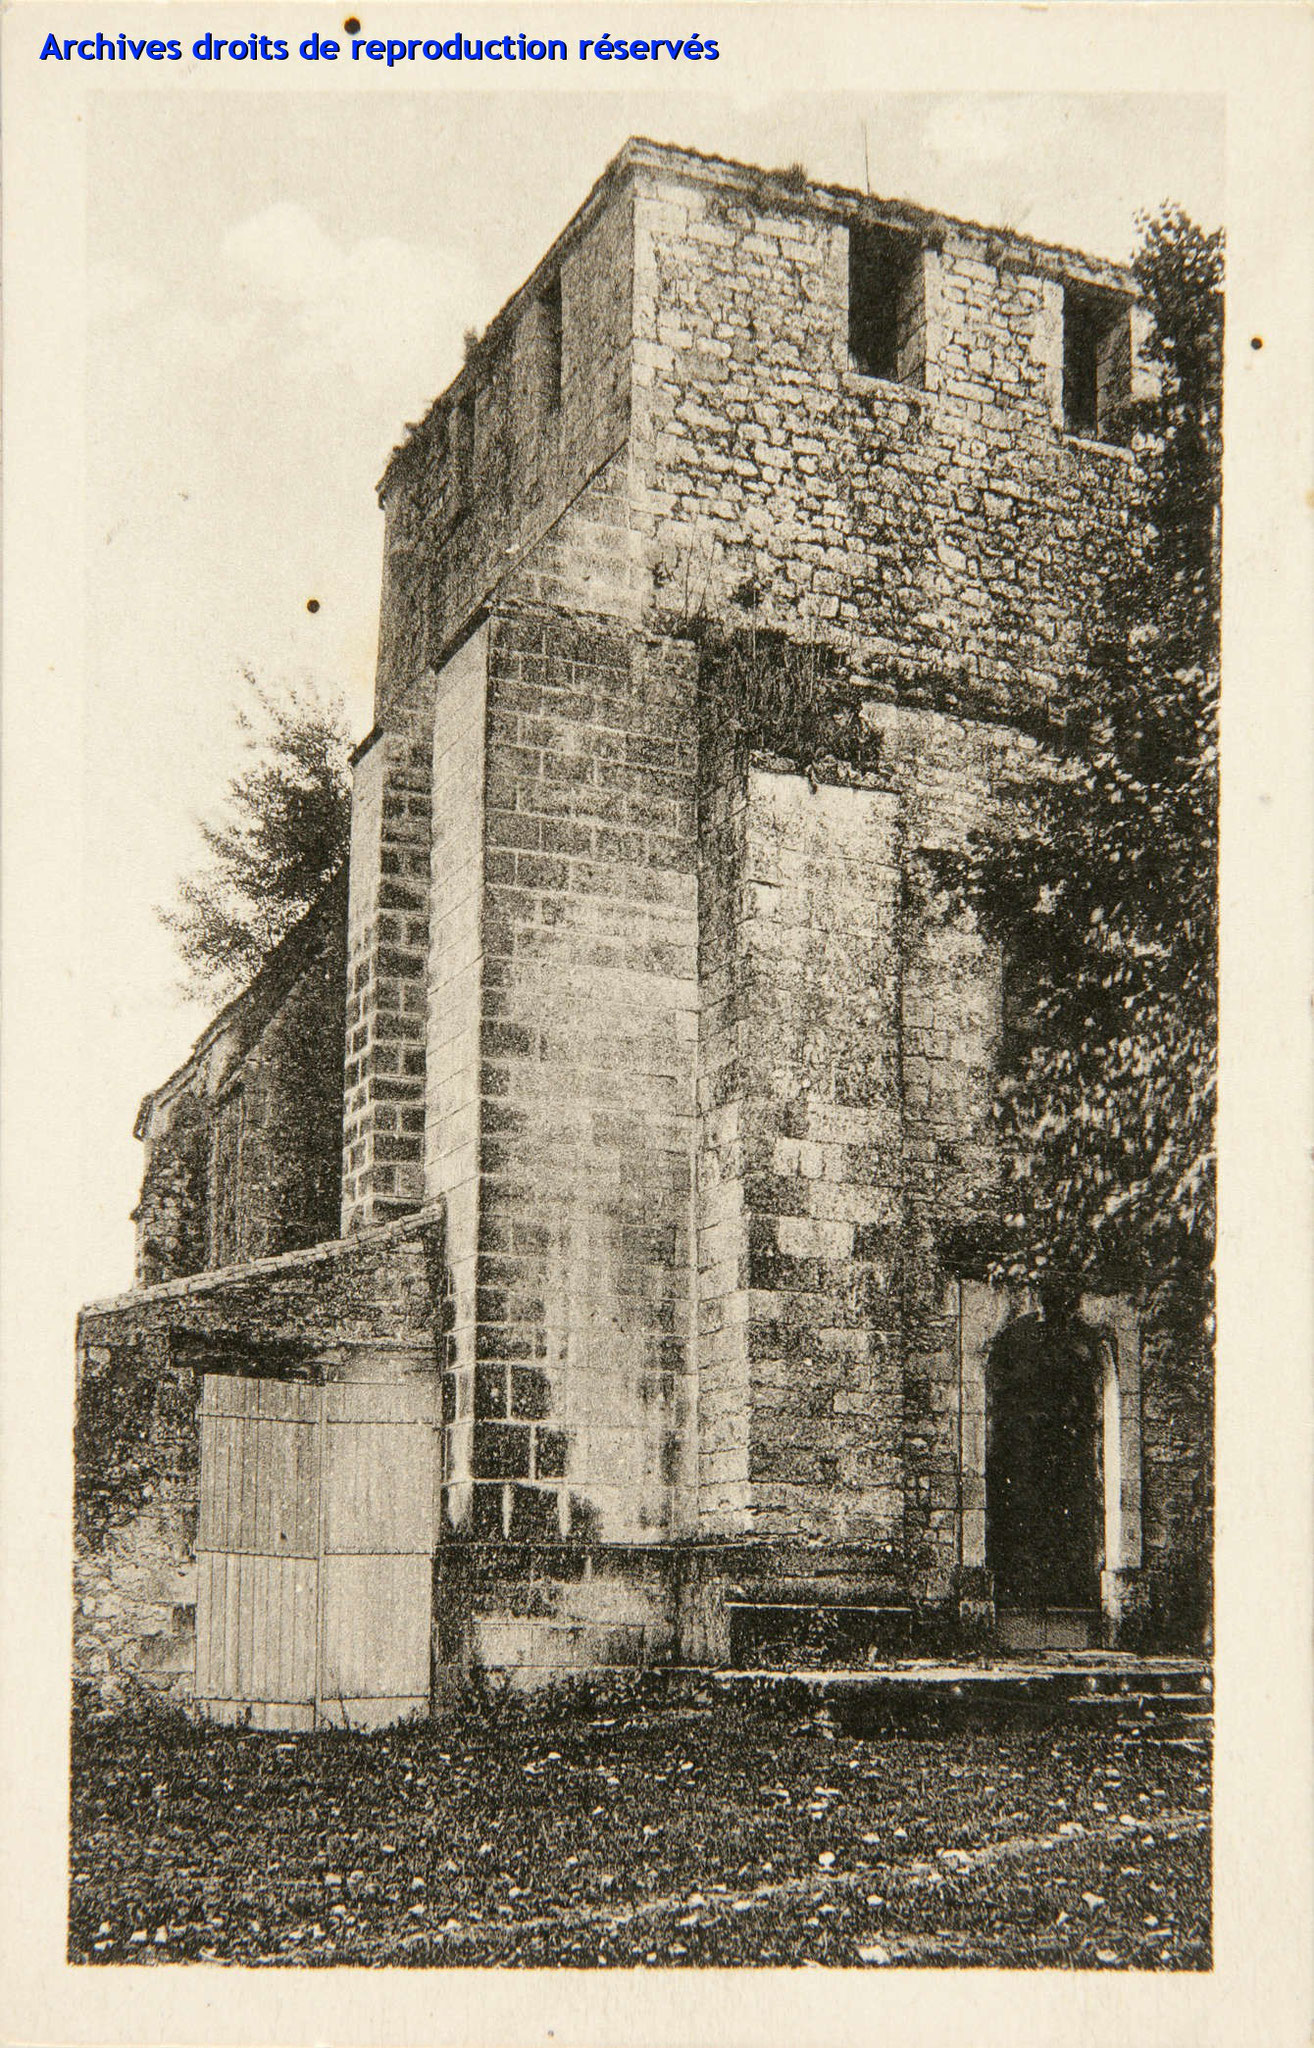 Carte postale 4029 - A.G.A - La Charente pittoresque - FOUQUEBRUNE Eglise (Source : Archives départementales)